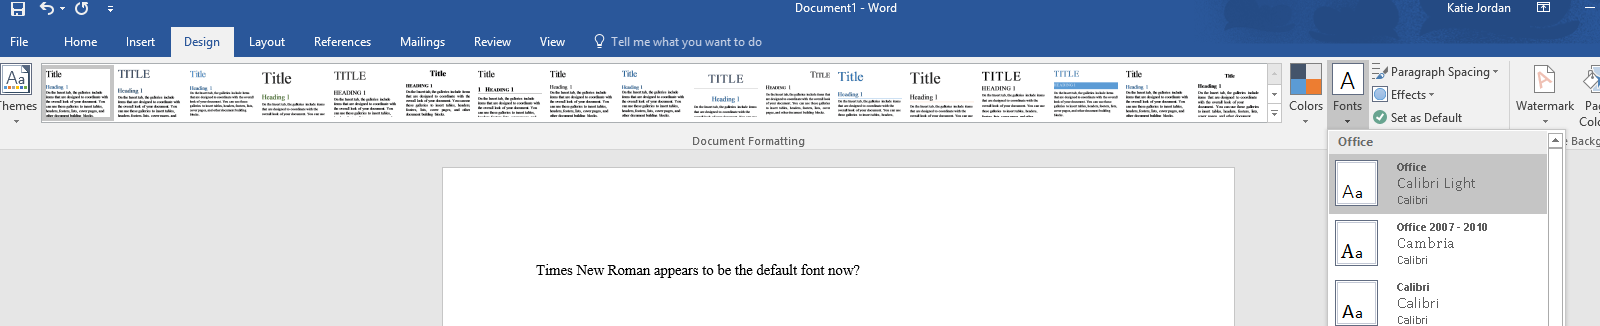 Default Office theme uses Times New Roman everywhere, not